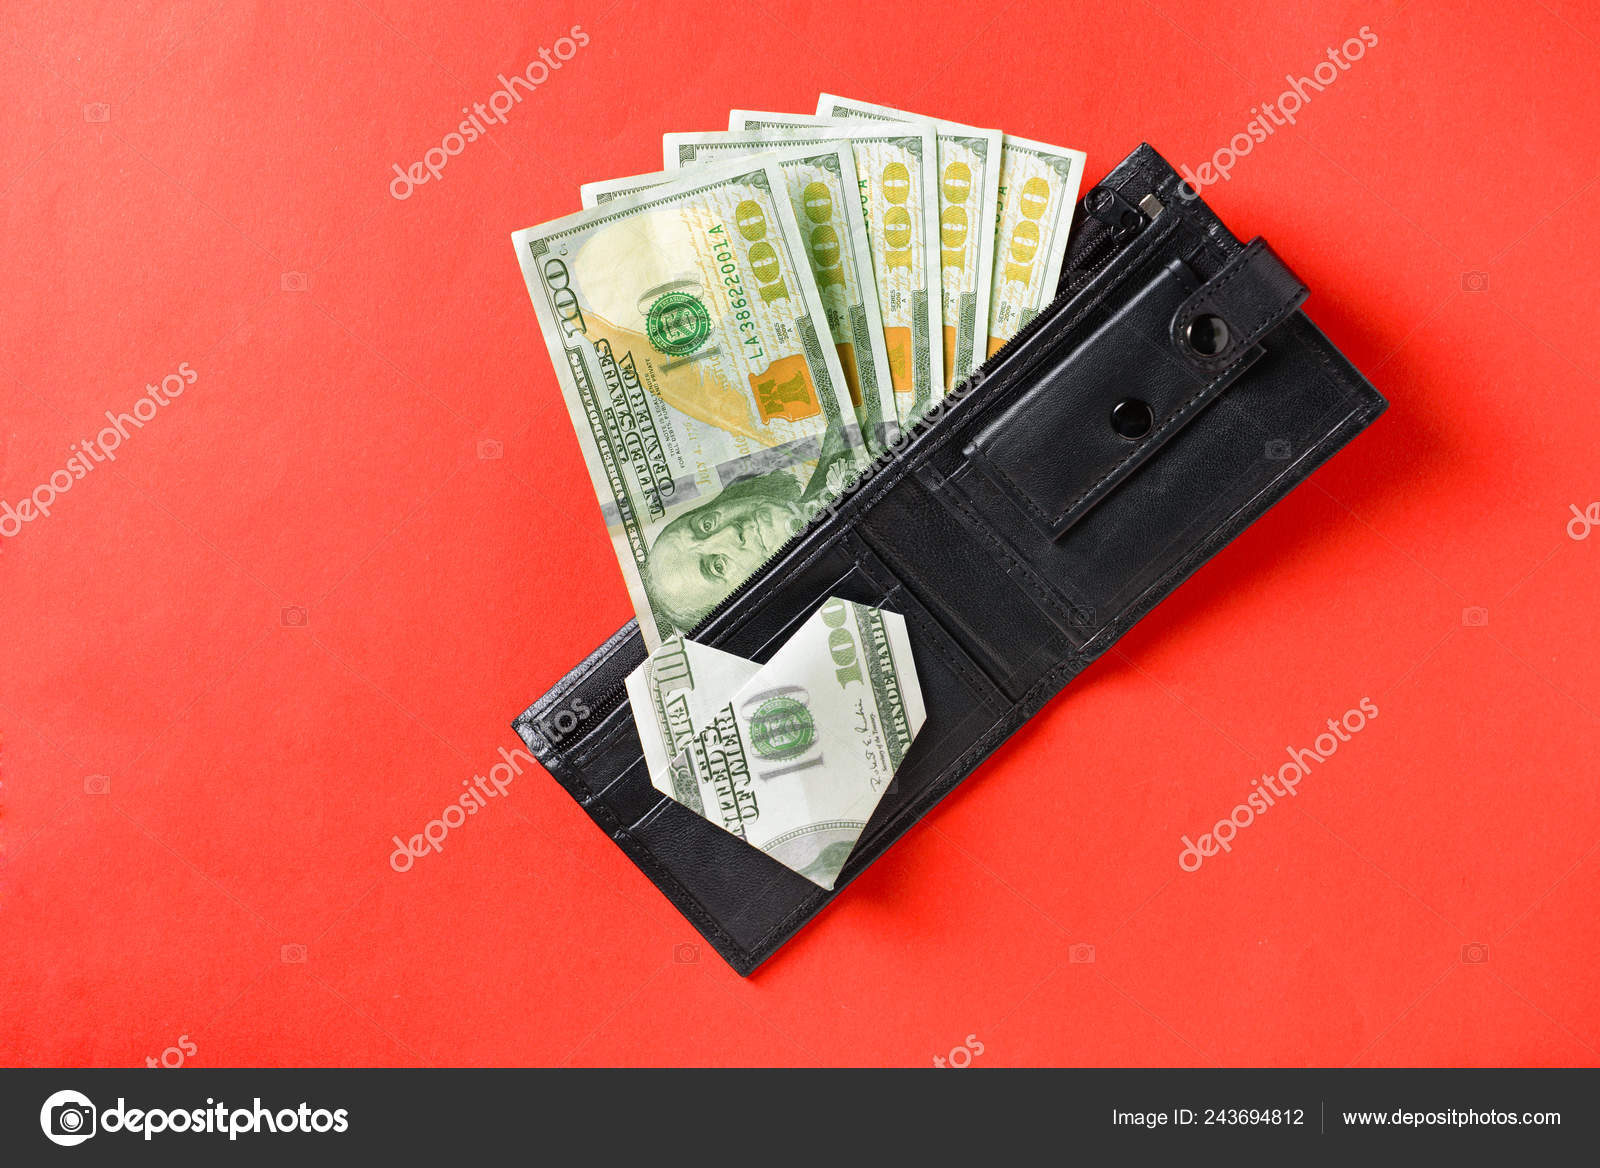 Origami Heart And Ring Dollar Bill One Dollar Stock Image - Image ... | 1168x1600